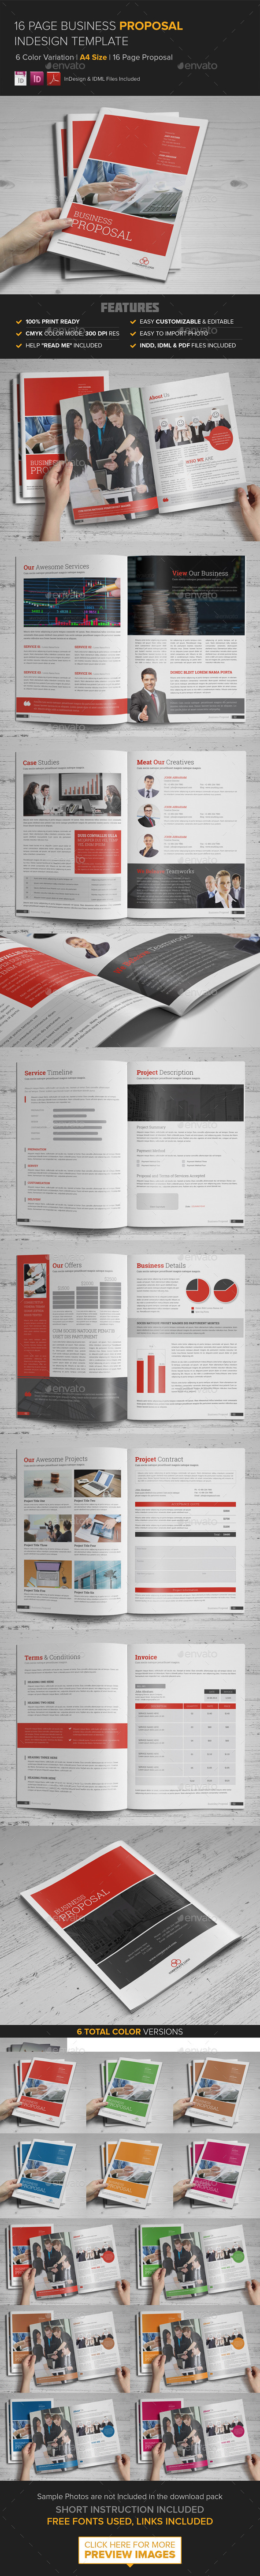 GraphicRiver Business Proposal InDesign Template 9585059